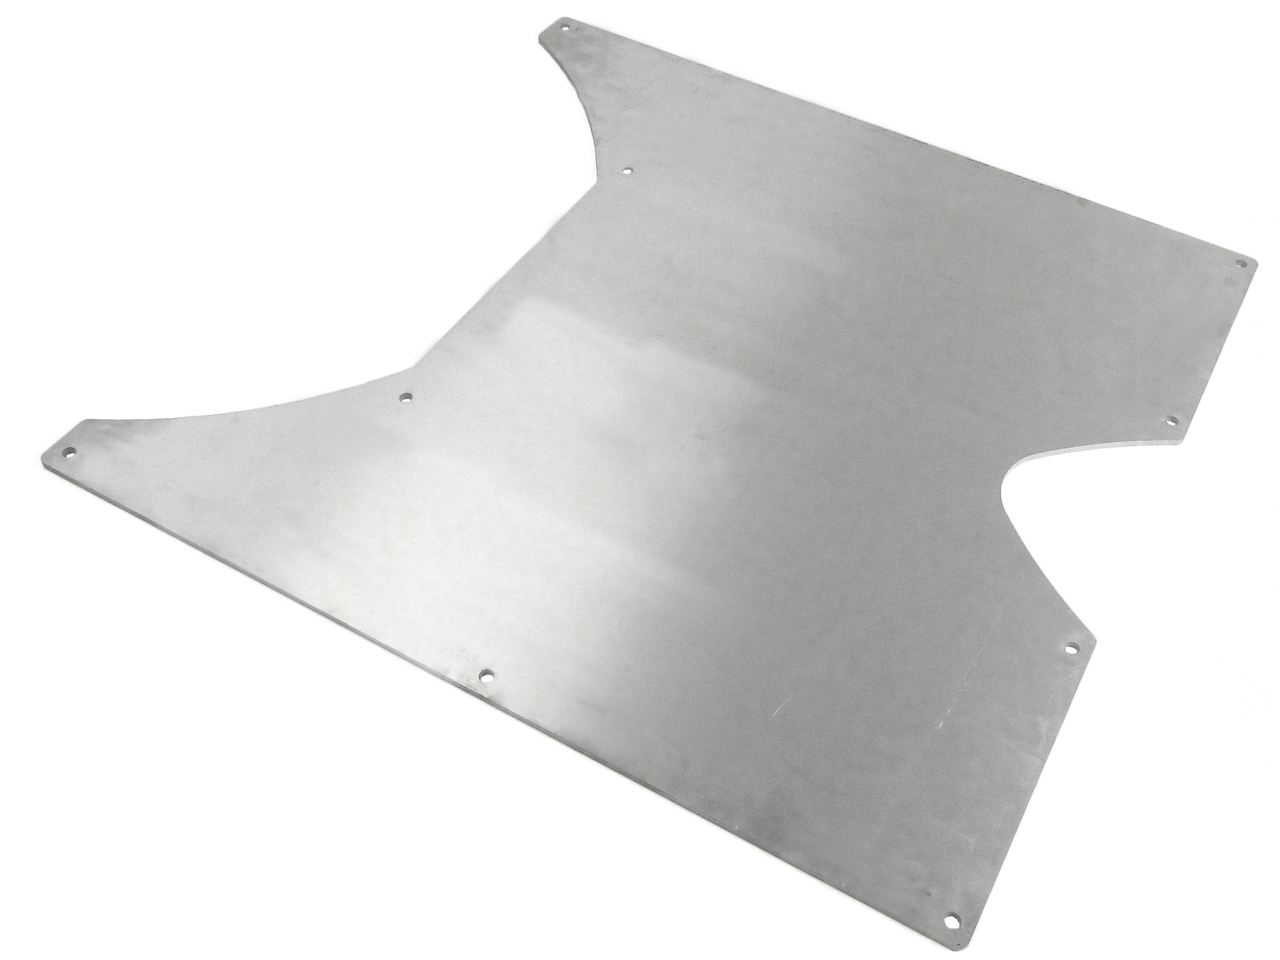 Jeep Skid Plate Belly Up 07-Pres Wrangler JKU 4 Door .3125 Thick 6061 Aluminum Bare GenRight